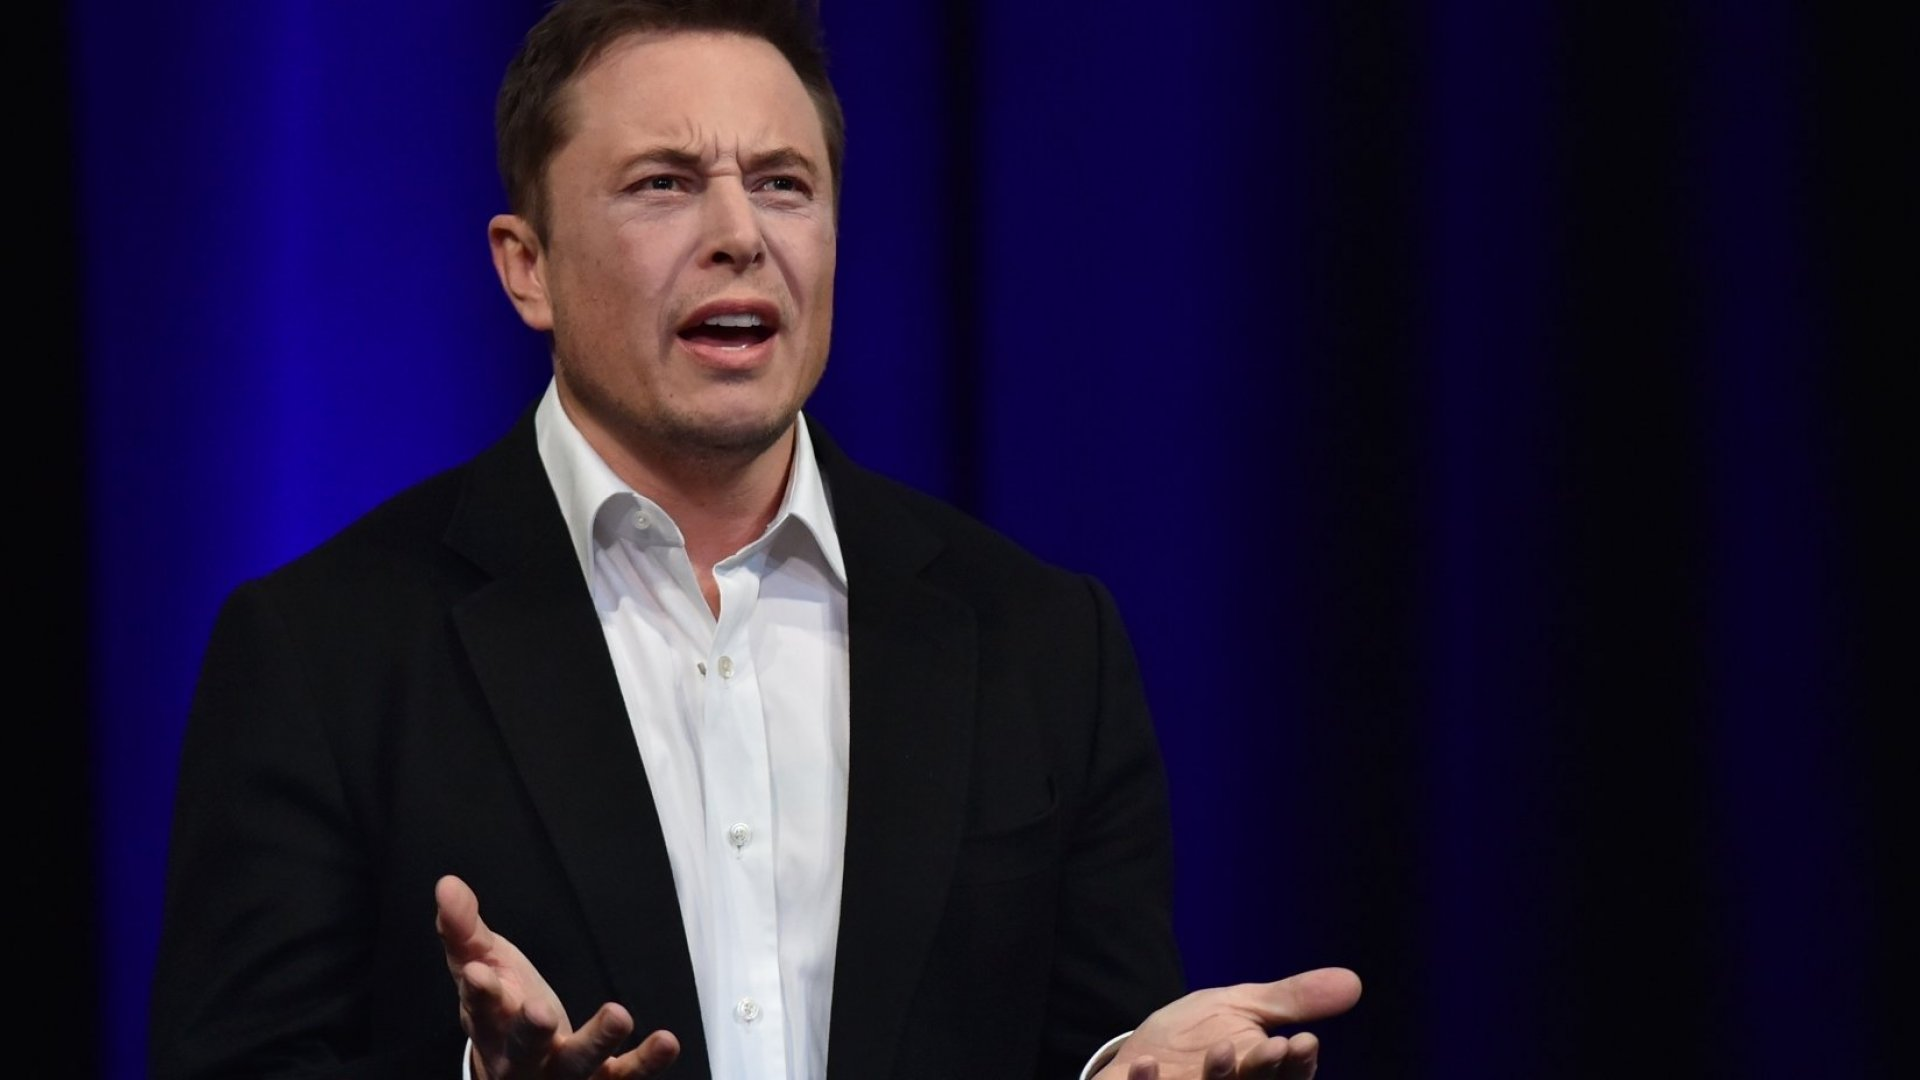 10Head-Shaking Moments From Elon Musk's Stunning Companywide Emails (Including Sunday's 'Big Sabotage' Email)